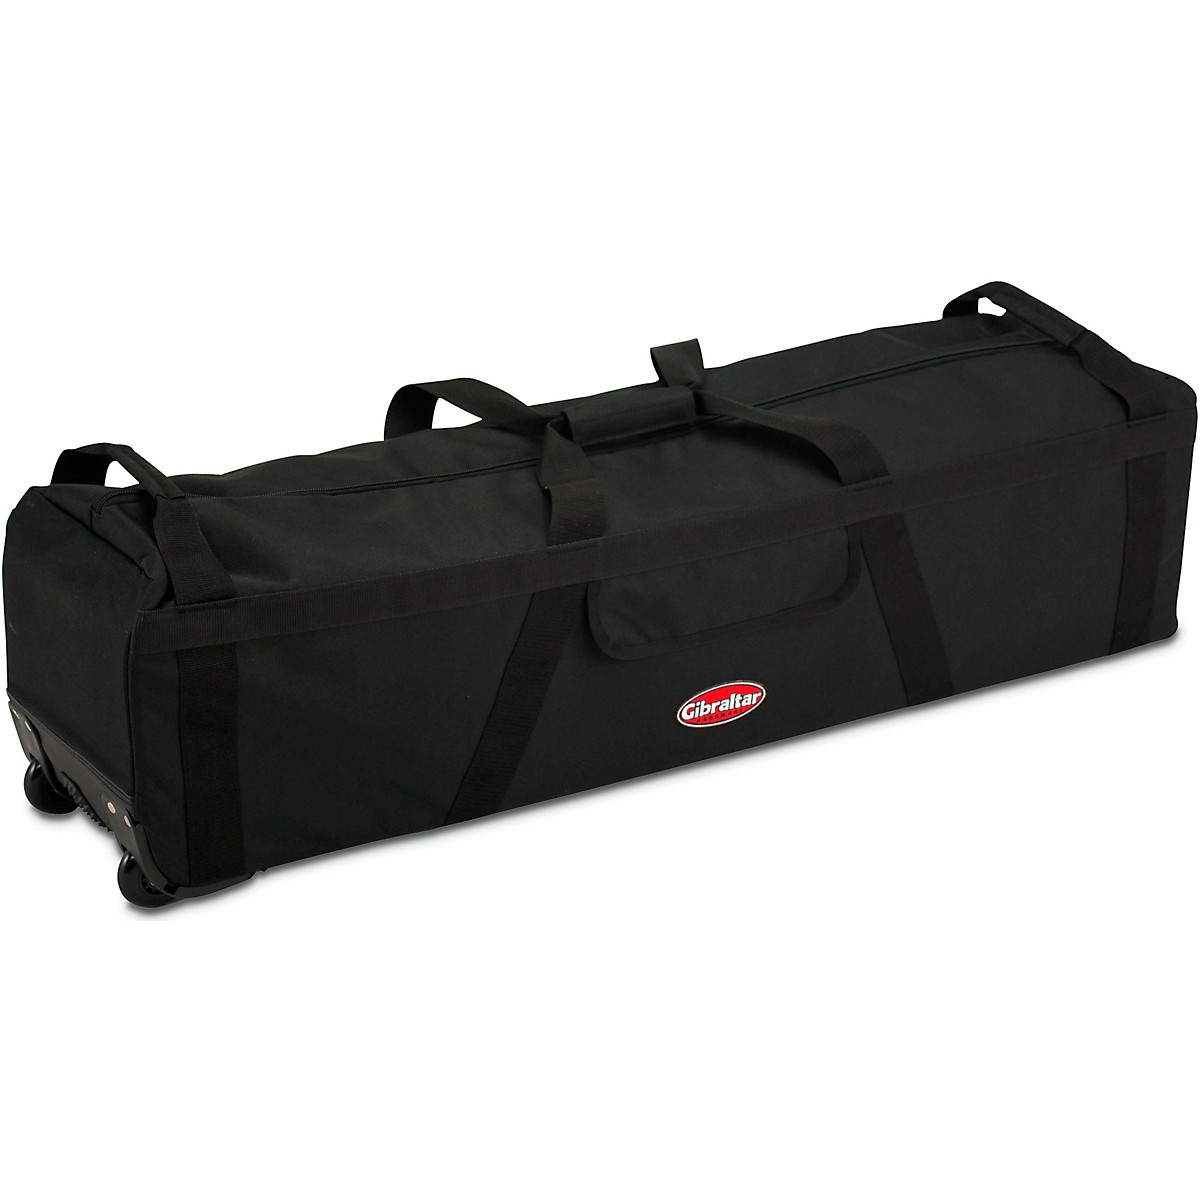 Gibraltar Long Hardware Bag With Wheels